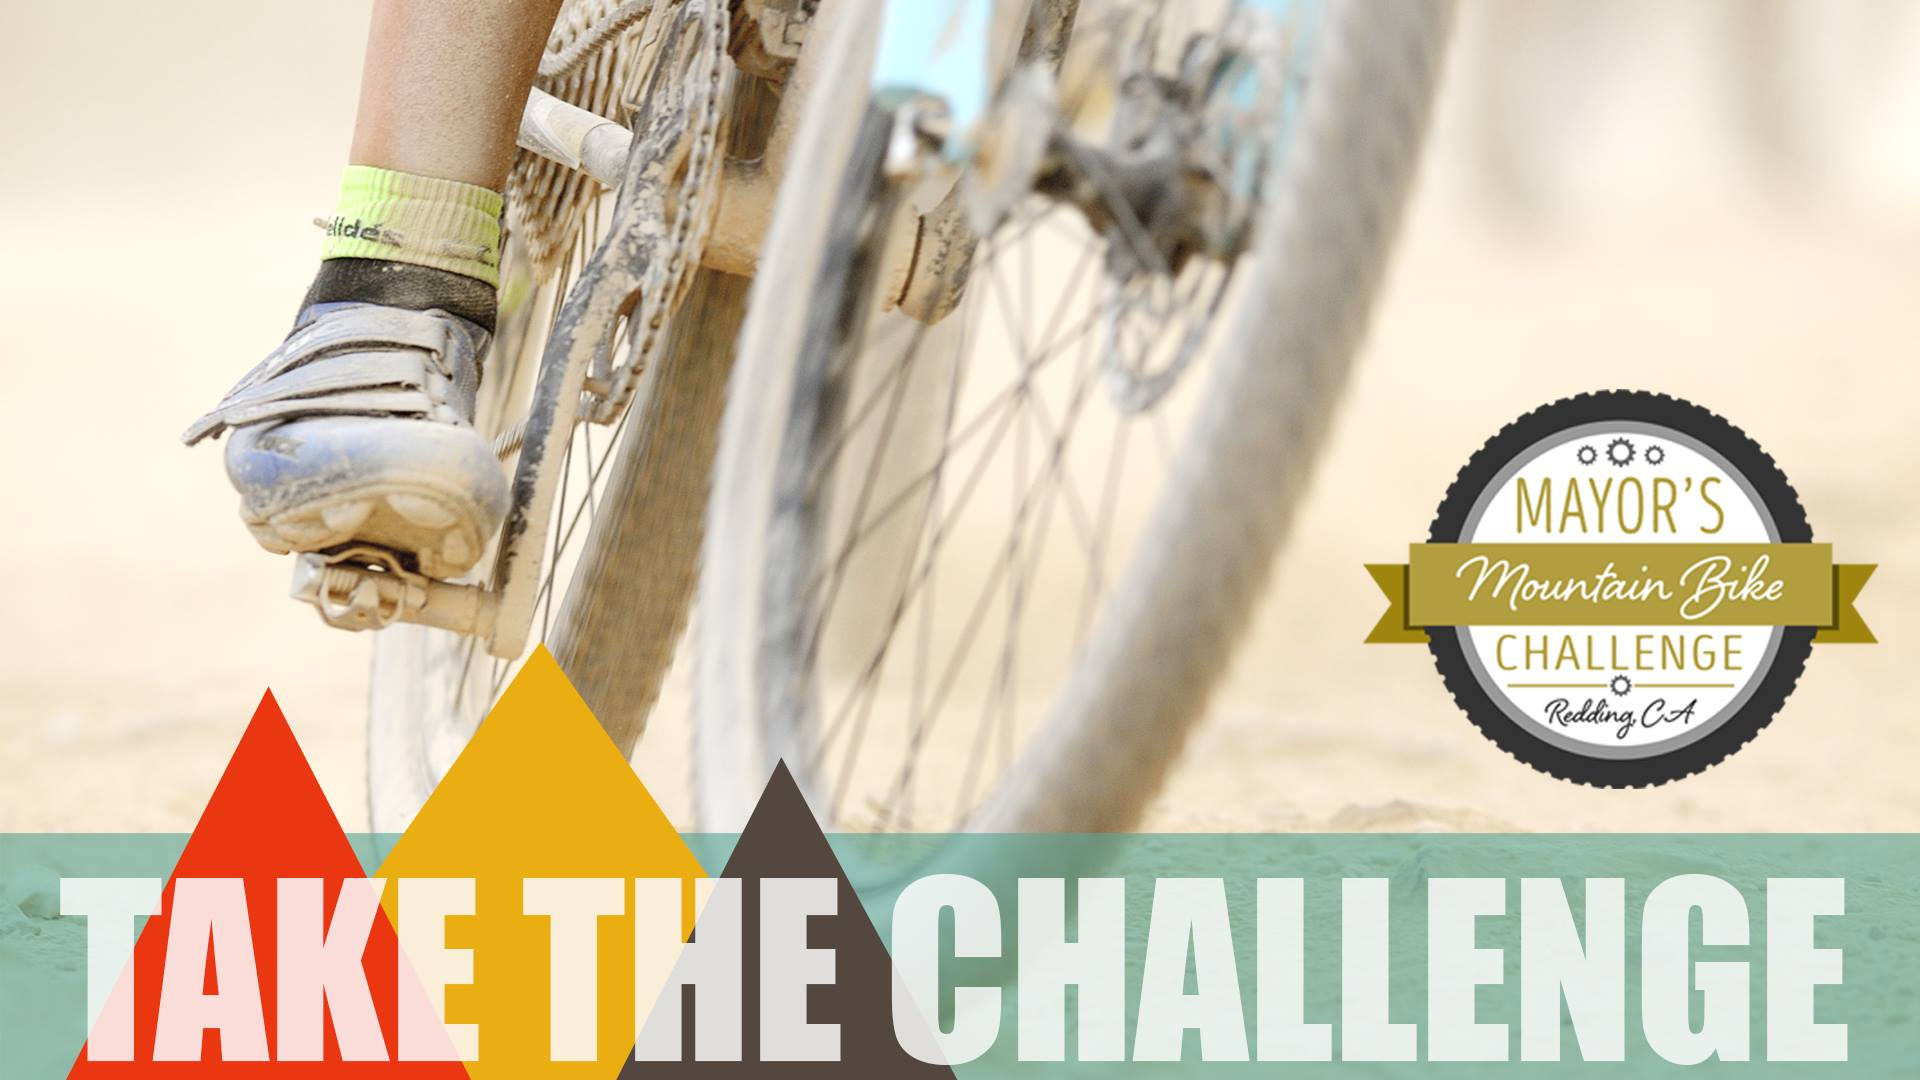 Mayor's MTB Challenge Opening at City Council, March 20